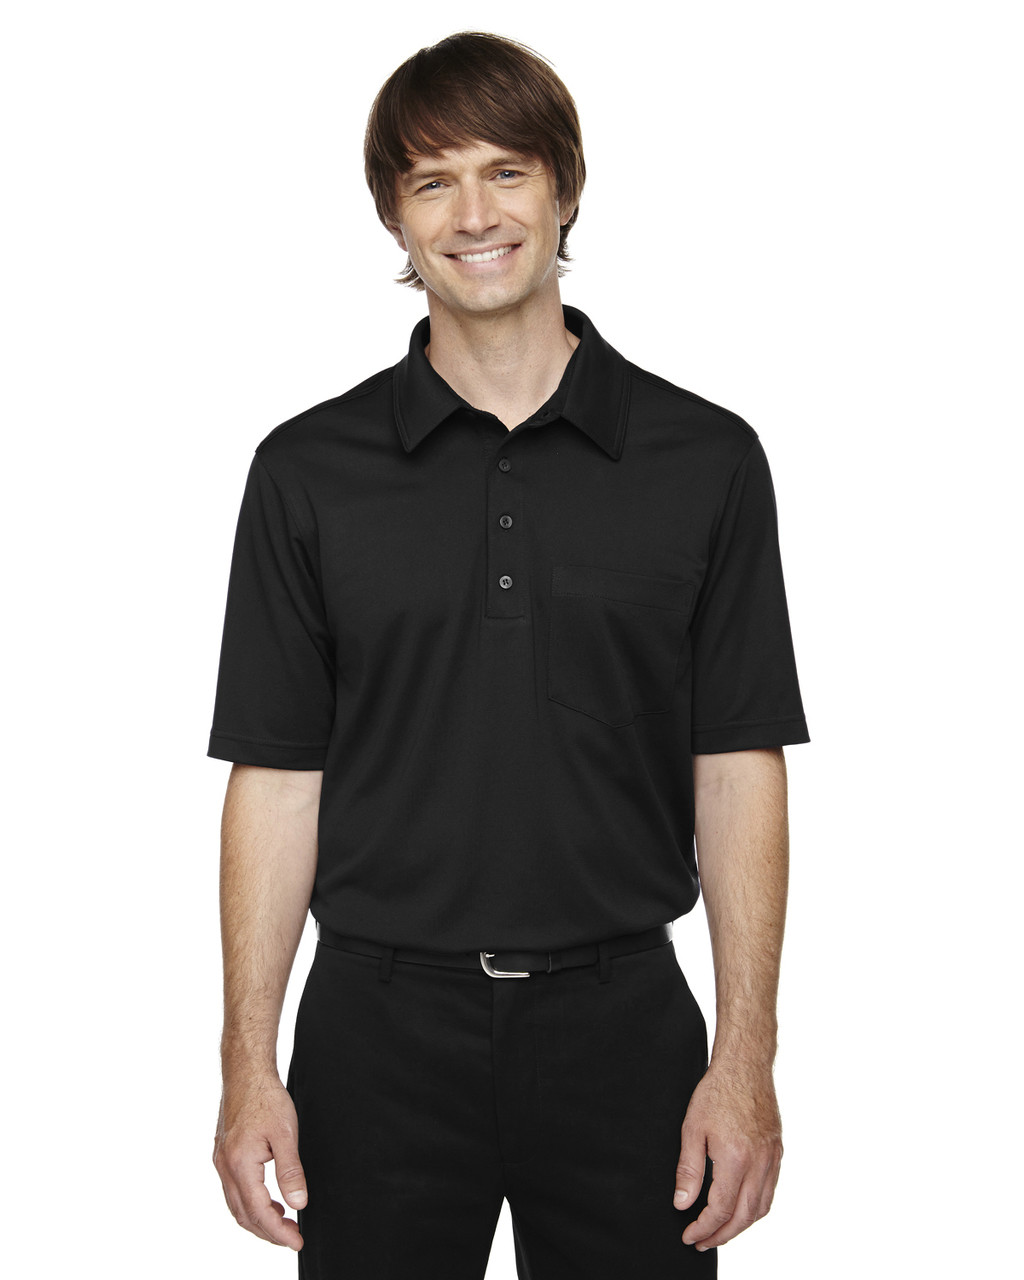 Black - 85114T Ash City - Extreme Eperformance Men's Tall Protection Plus Polo Shirt